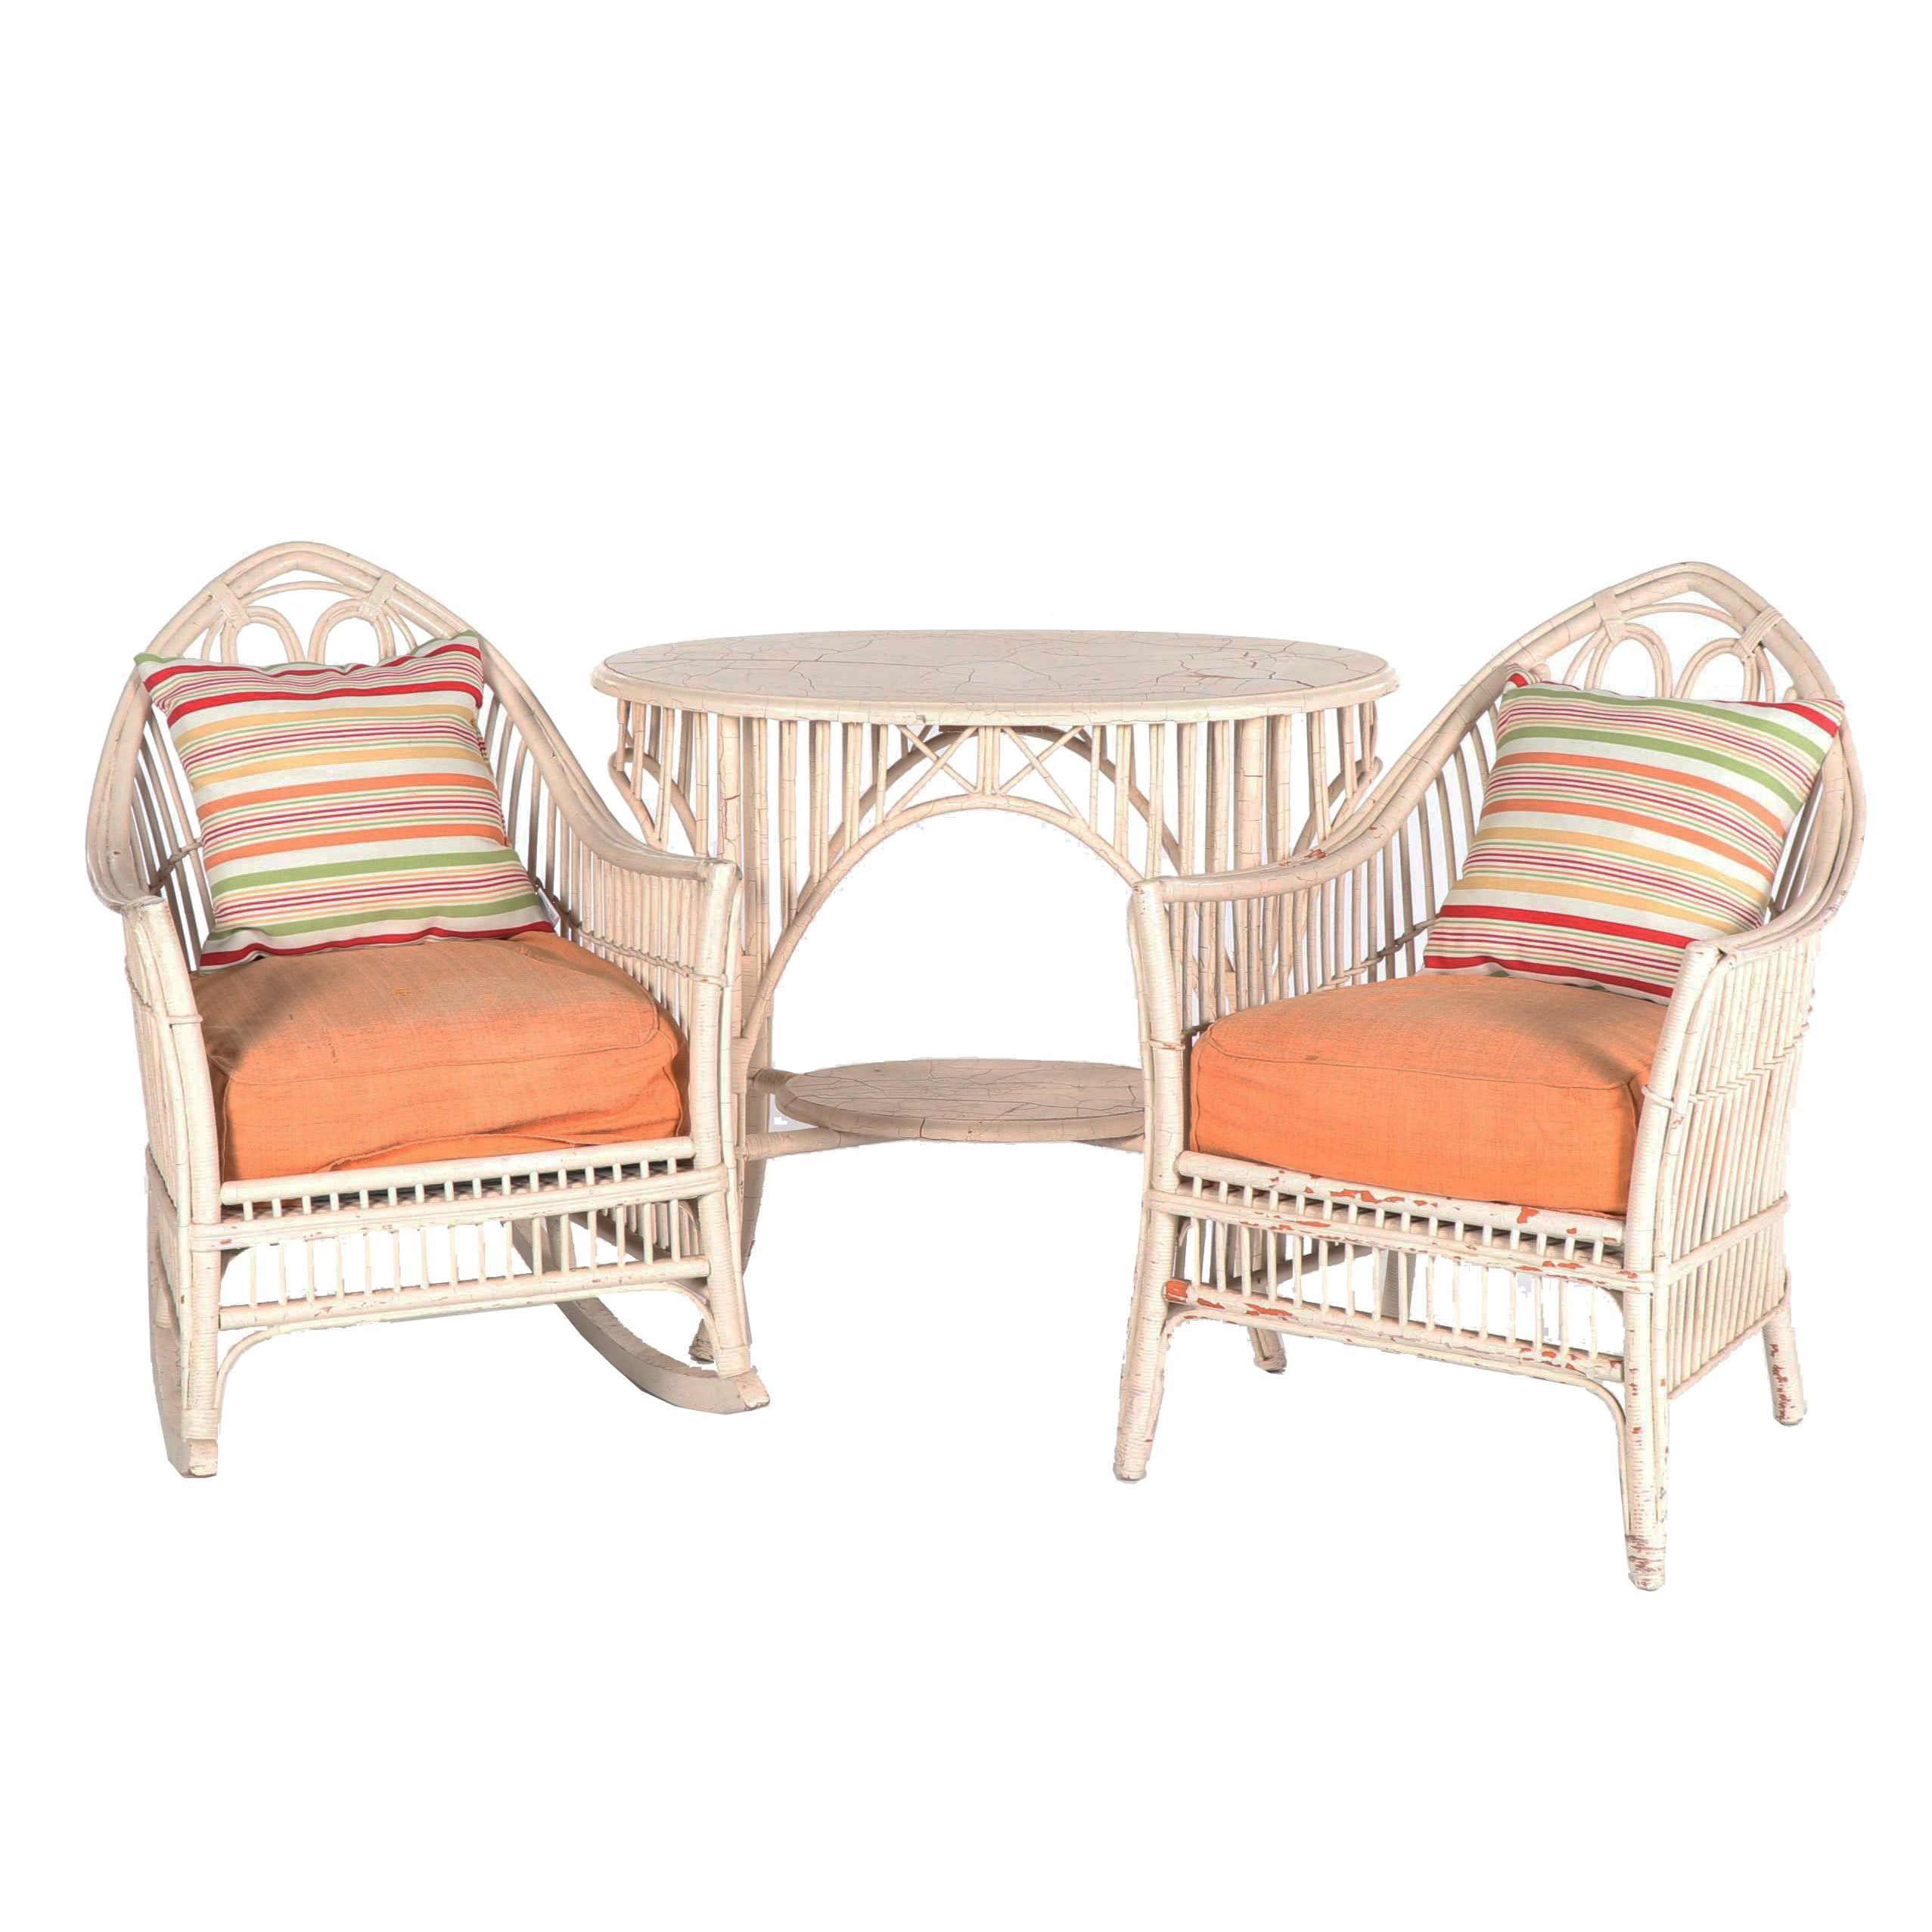 Art Nouveau Style Rattan Armchairs and Table Set, 20th Century